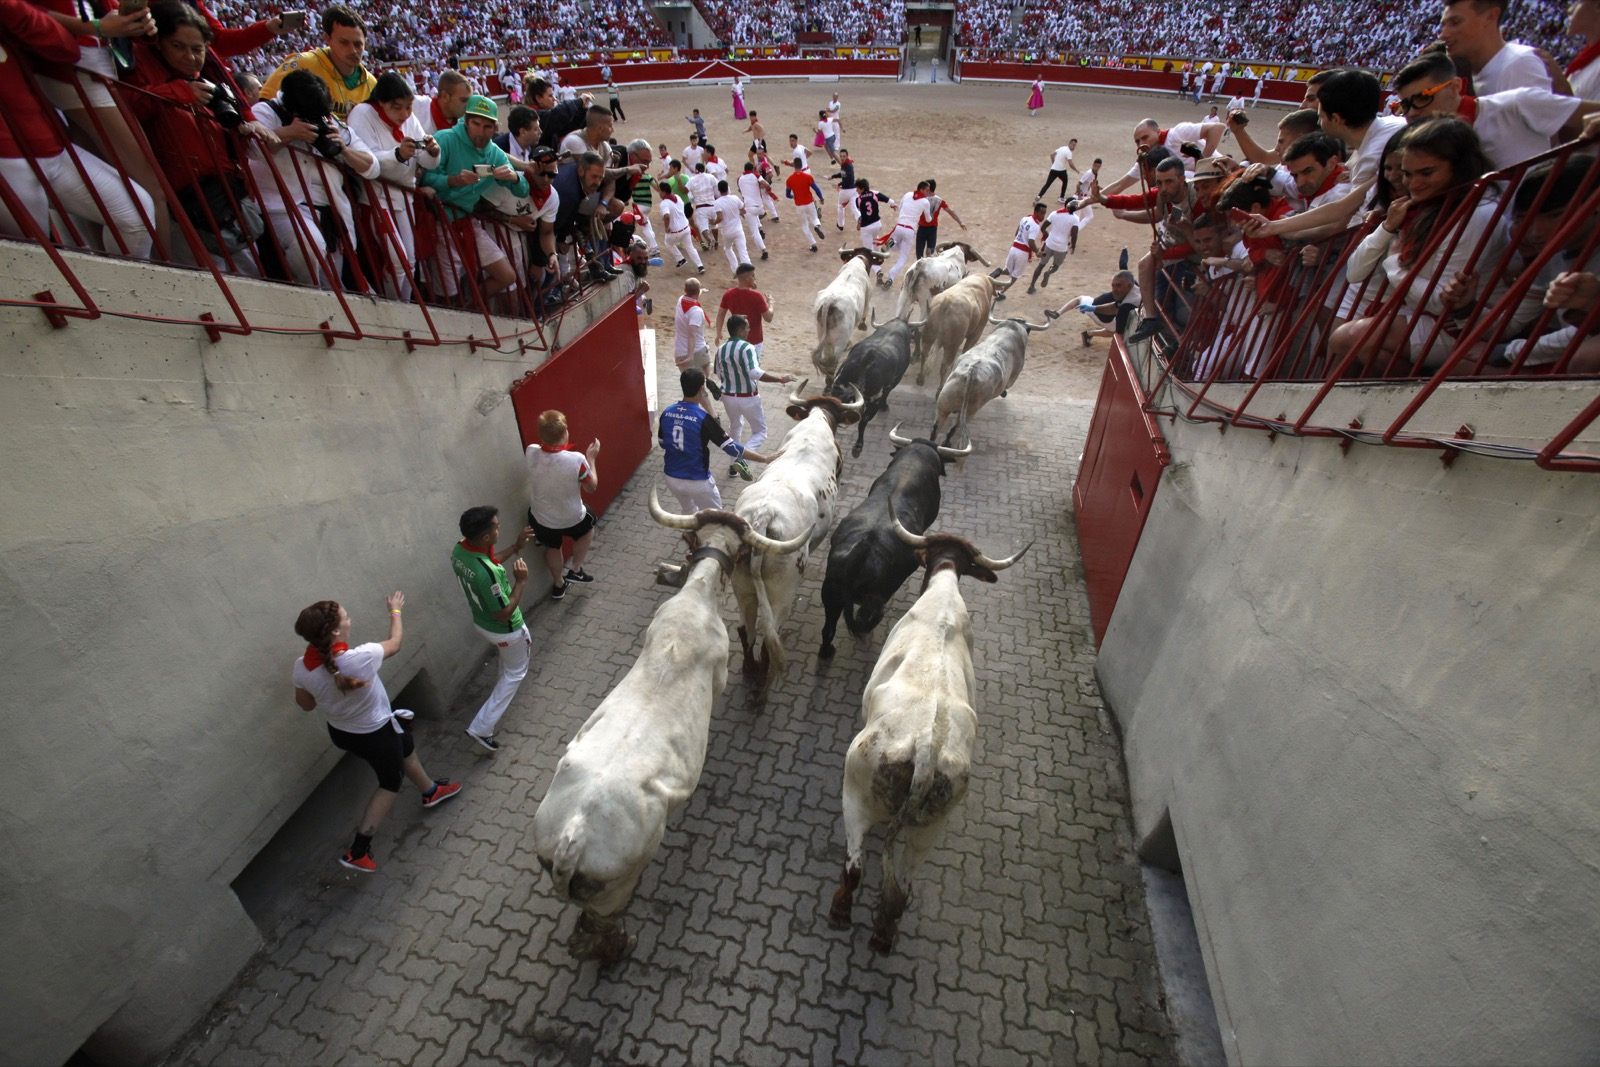 The running of the bulls Pamplona